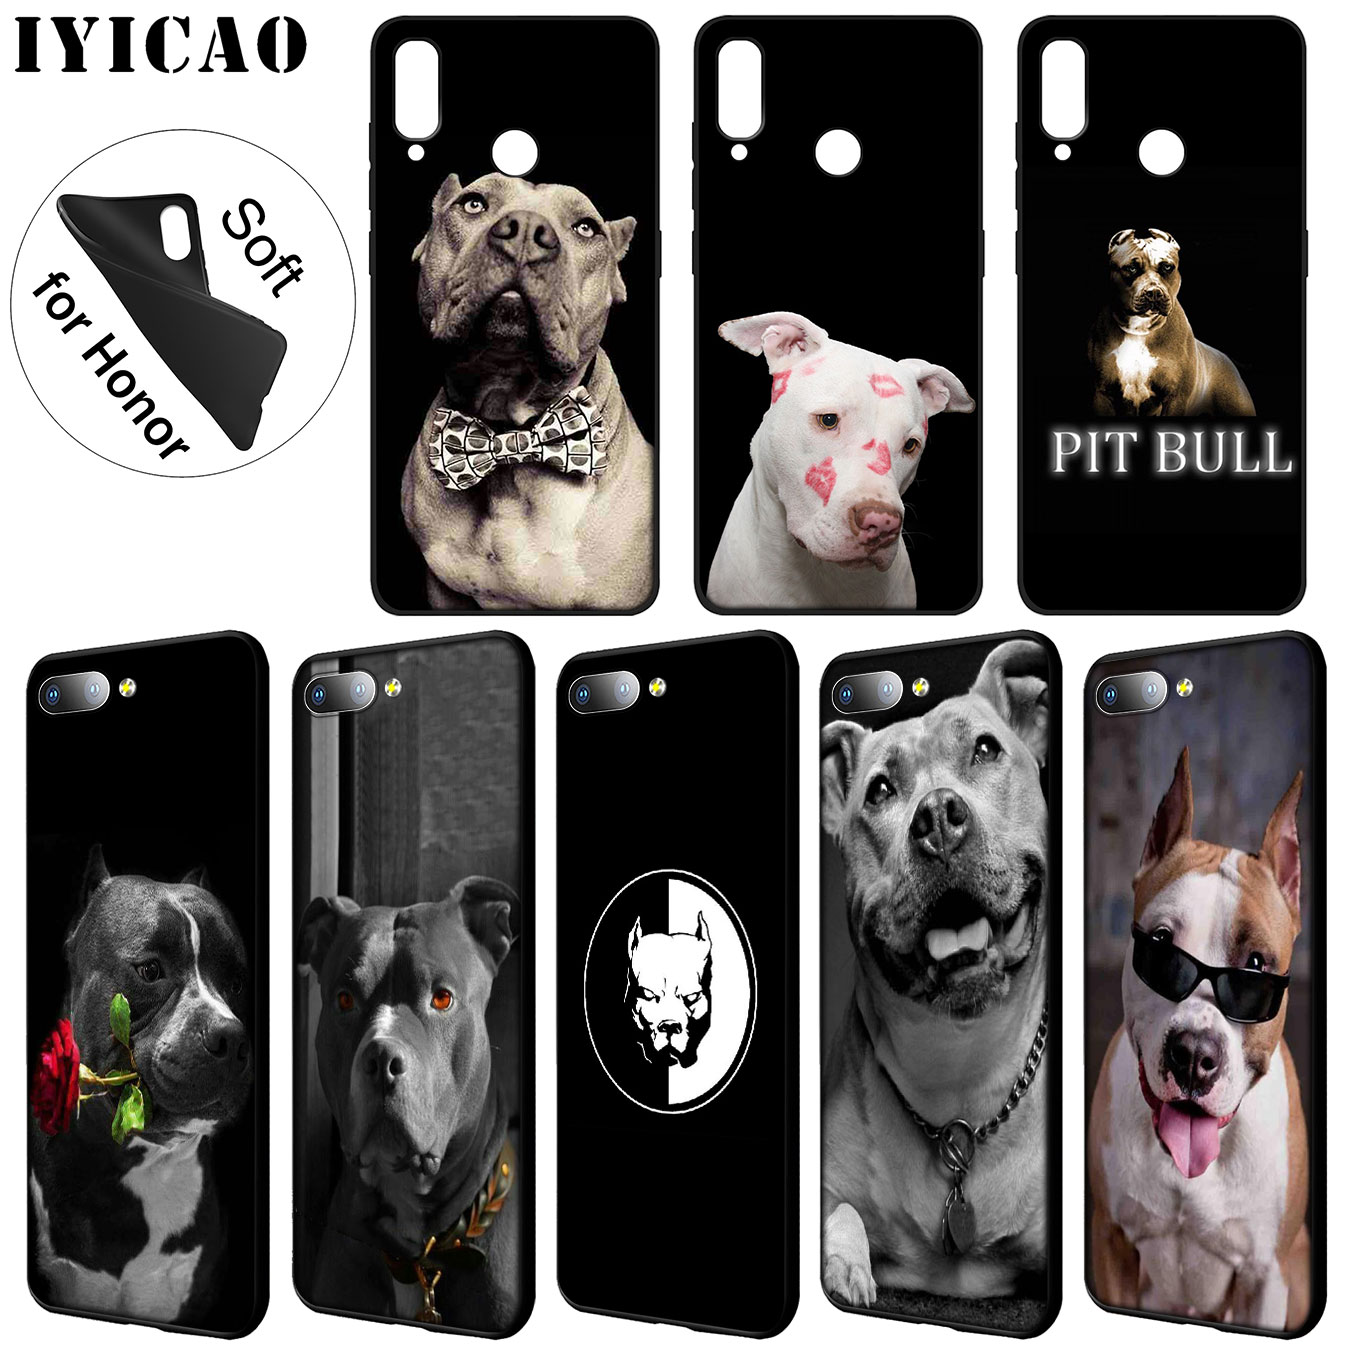 IYICAO Pit Bull Lovely Pet Dog Pitbull Black Soft Case for Huawei Y9 Y7 Y6 Prime 2019 <font><b>Honor</b></font> 20 8C 8X 8 <font><b>9</b></font> 9X 10 <font><b>Lite</b></font> 7C 7X 7A Pro image